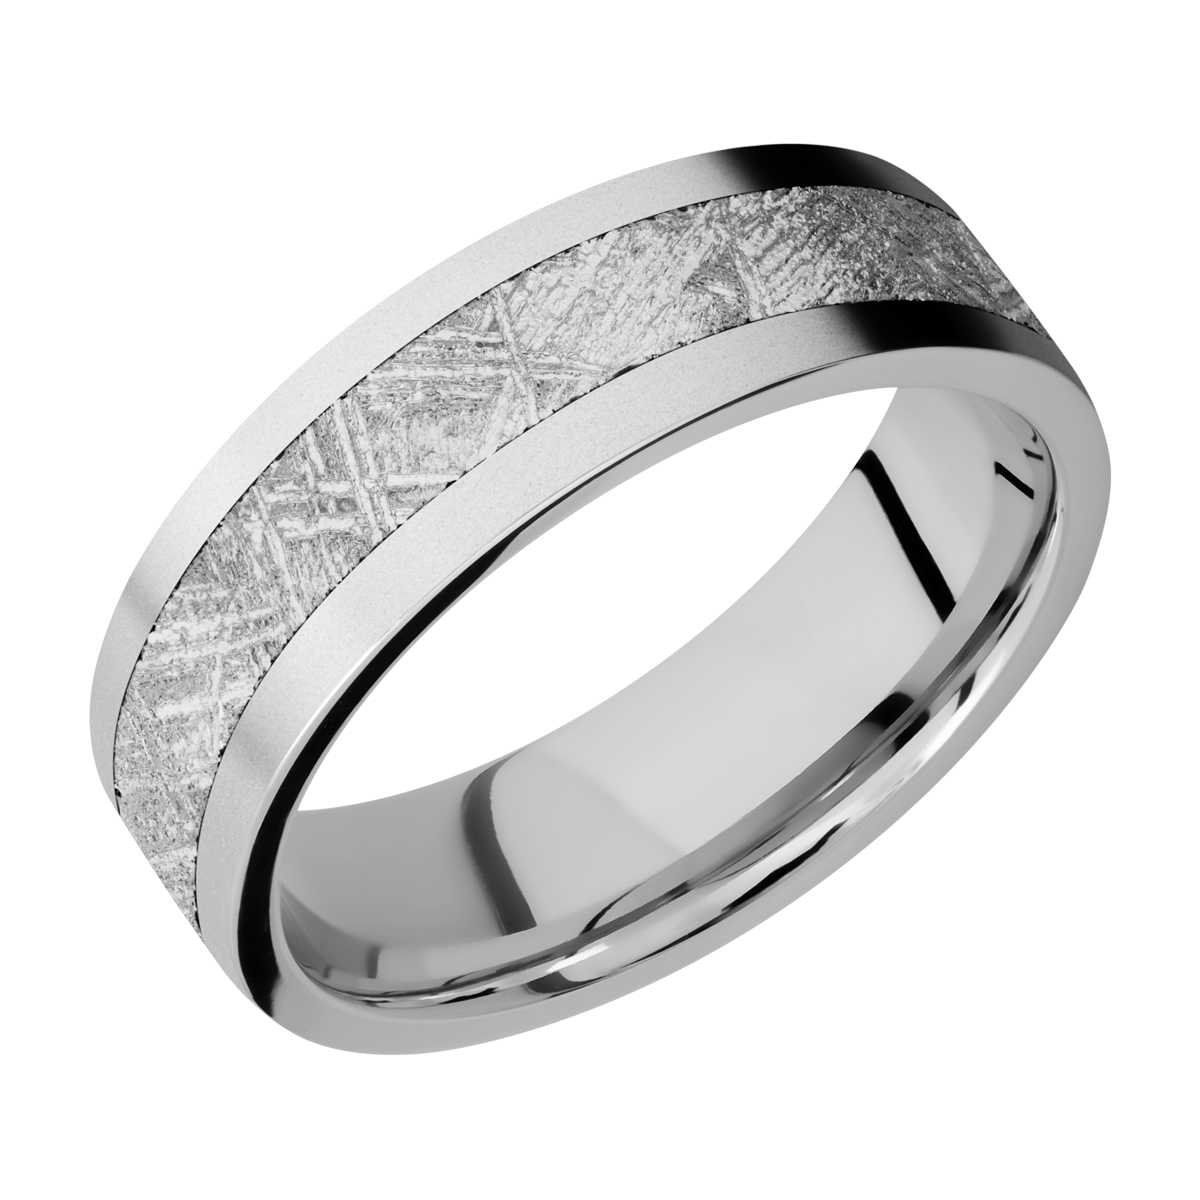 Lashbrook CC7F14/METEORITE Cobalt Chrome Wedding Ring or Band